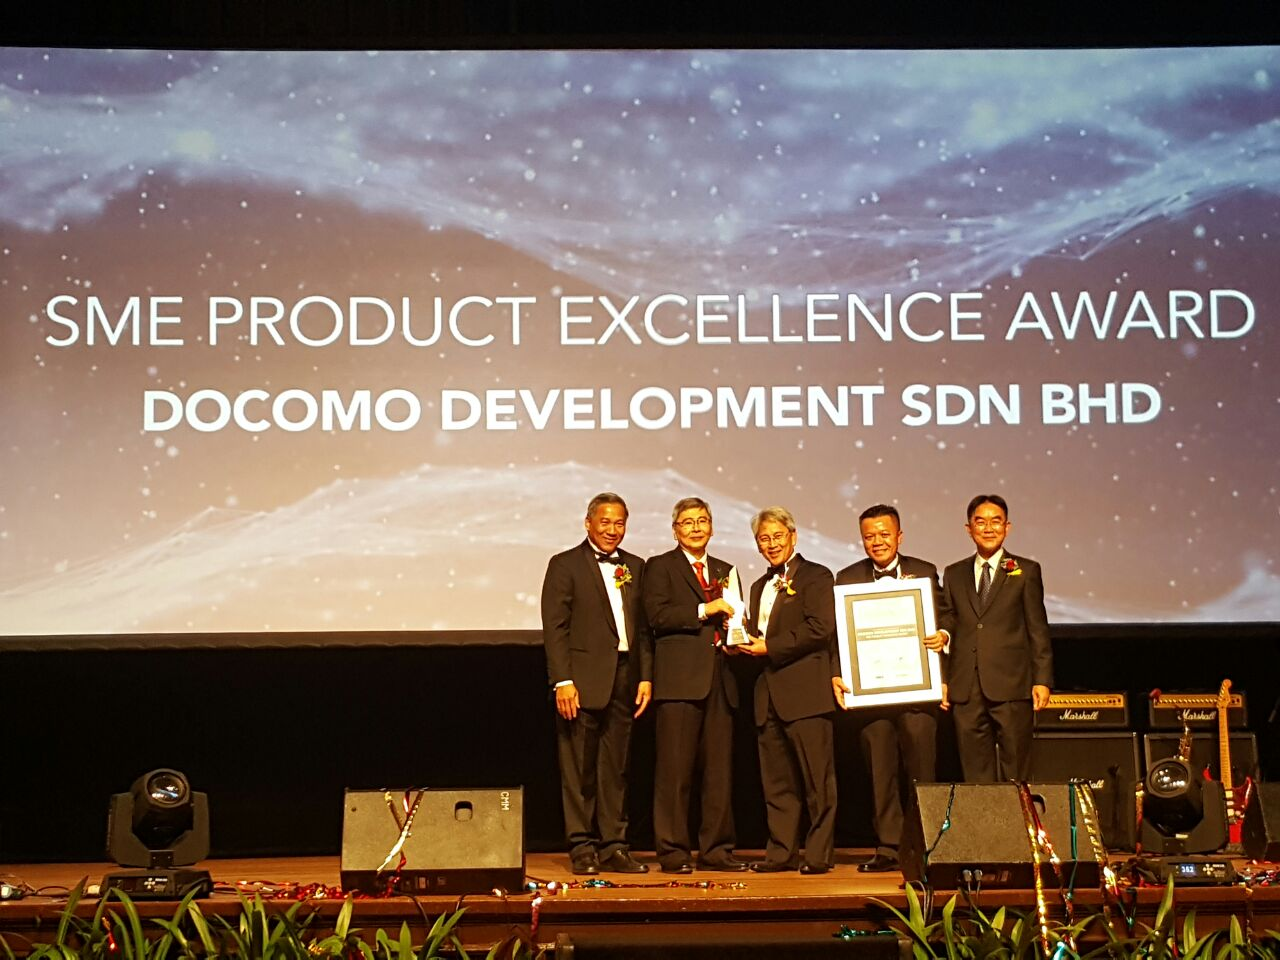 SME Product Excellence Award